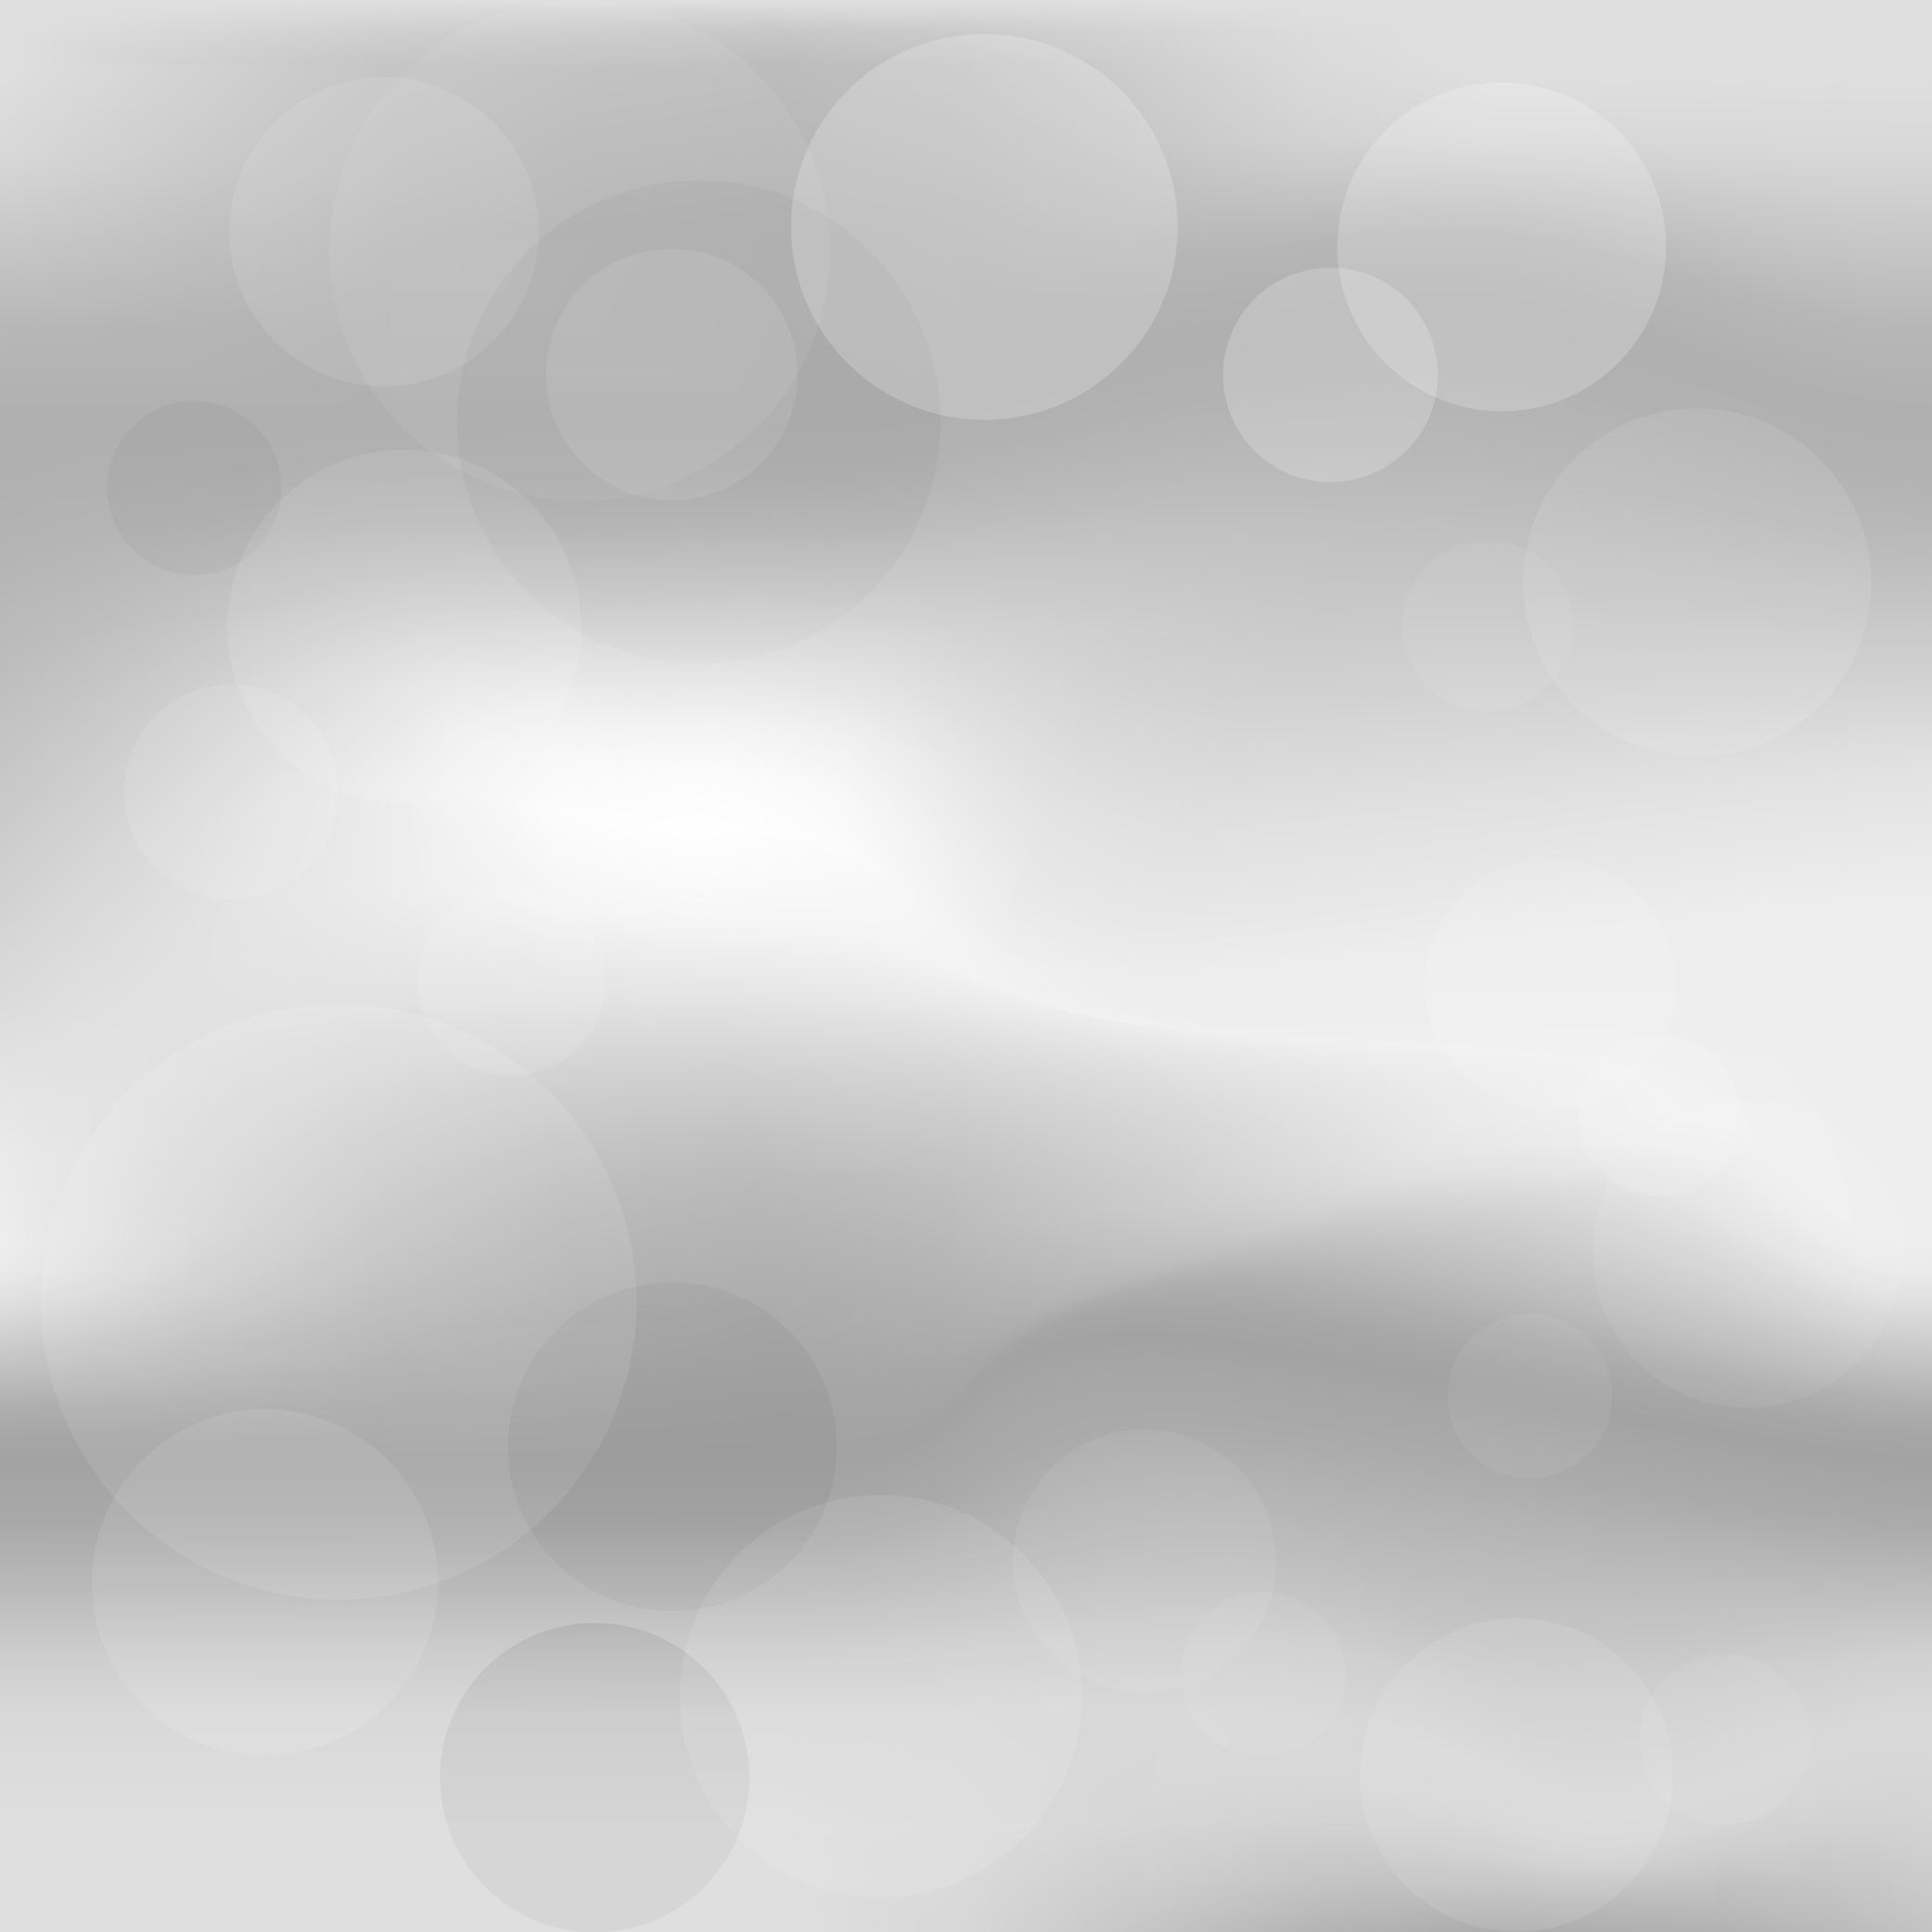 Blurred silver effect holographic gradient background example image 14